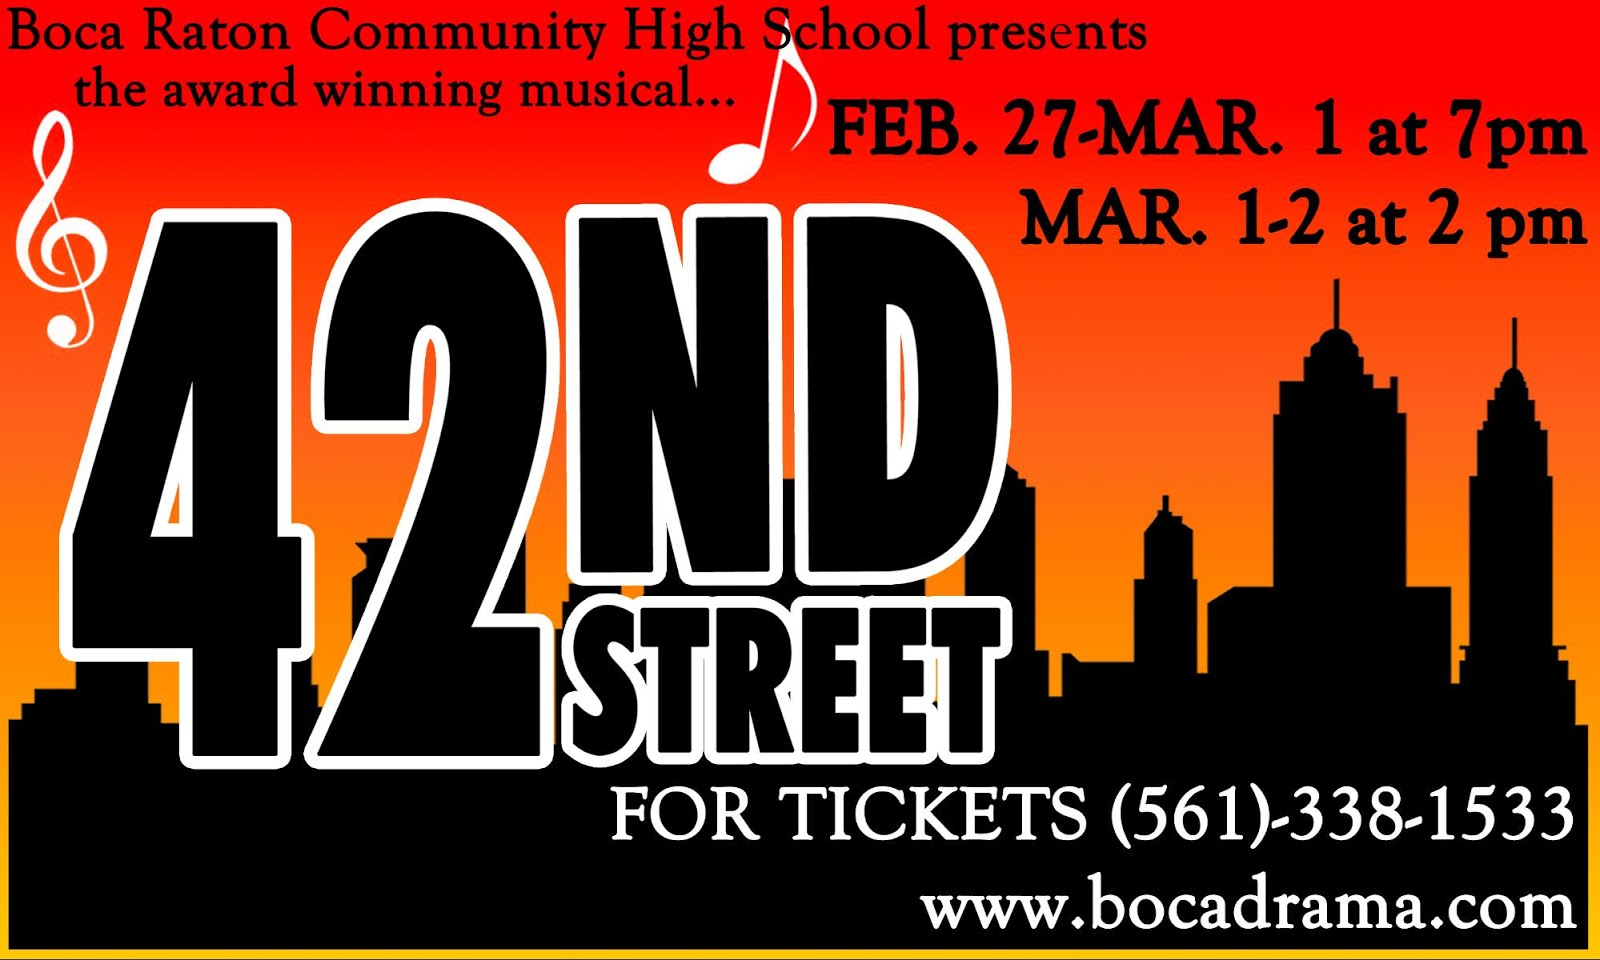 42nd Street, Feb. 27-Mar. 1 @7PM, Mar. 1+2 @2PM